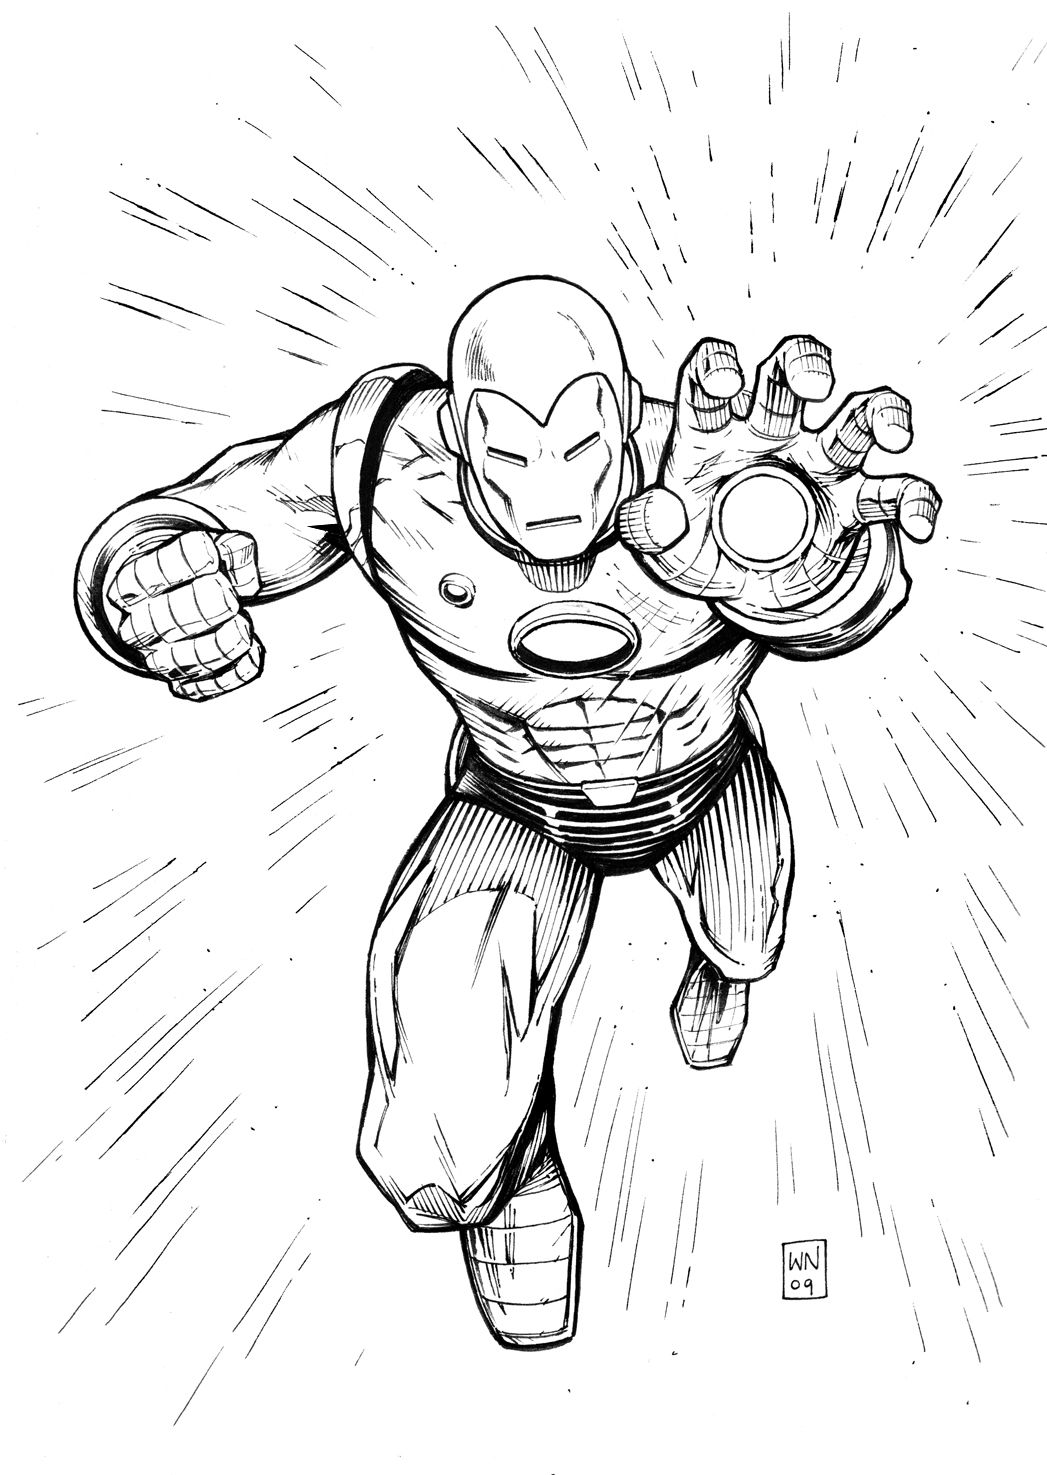 Ironman Inks by Wayne Nichols | Coloring Pages...for KIDS! | Pinterest